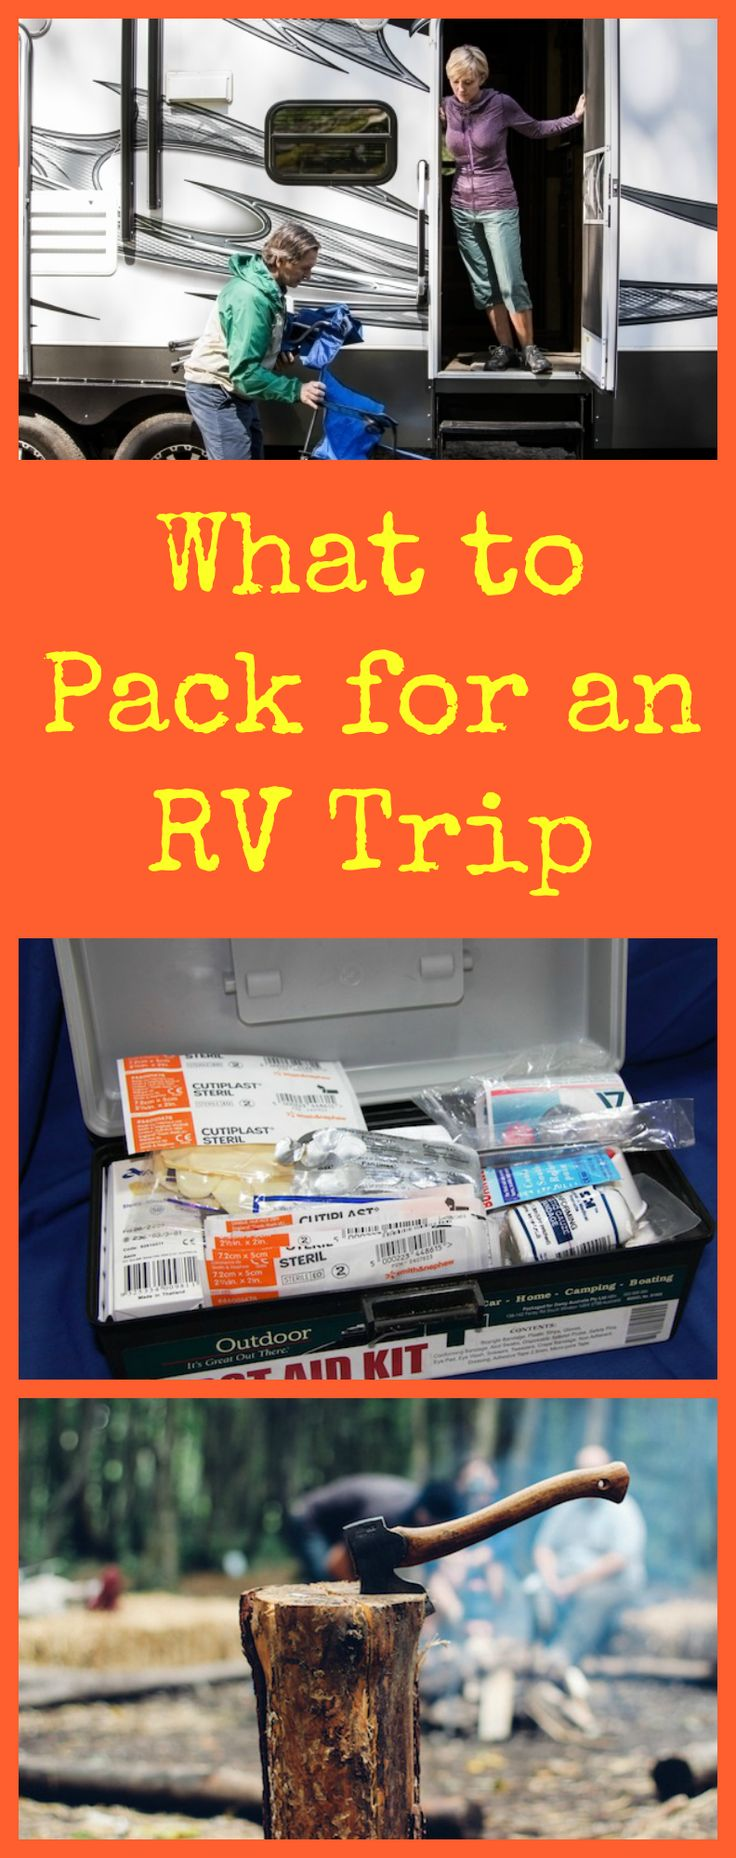 What to Pack for an RV Trip: Don't Forget the Basics - Next time you prepare for a camping vacation in an RV, these tips will help you get prepared! #InTheNation #ad